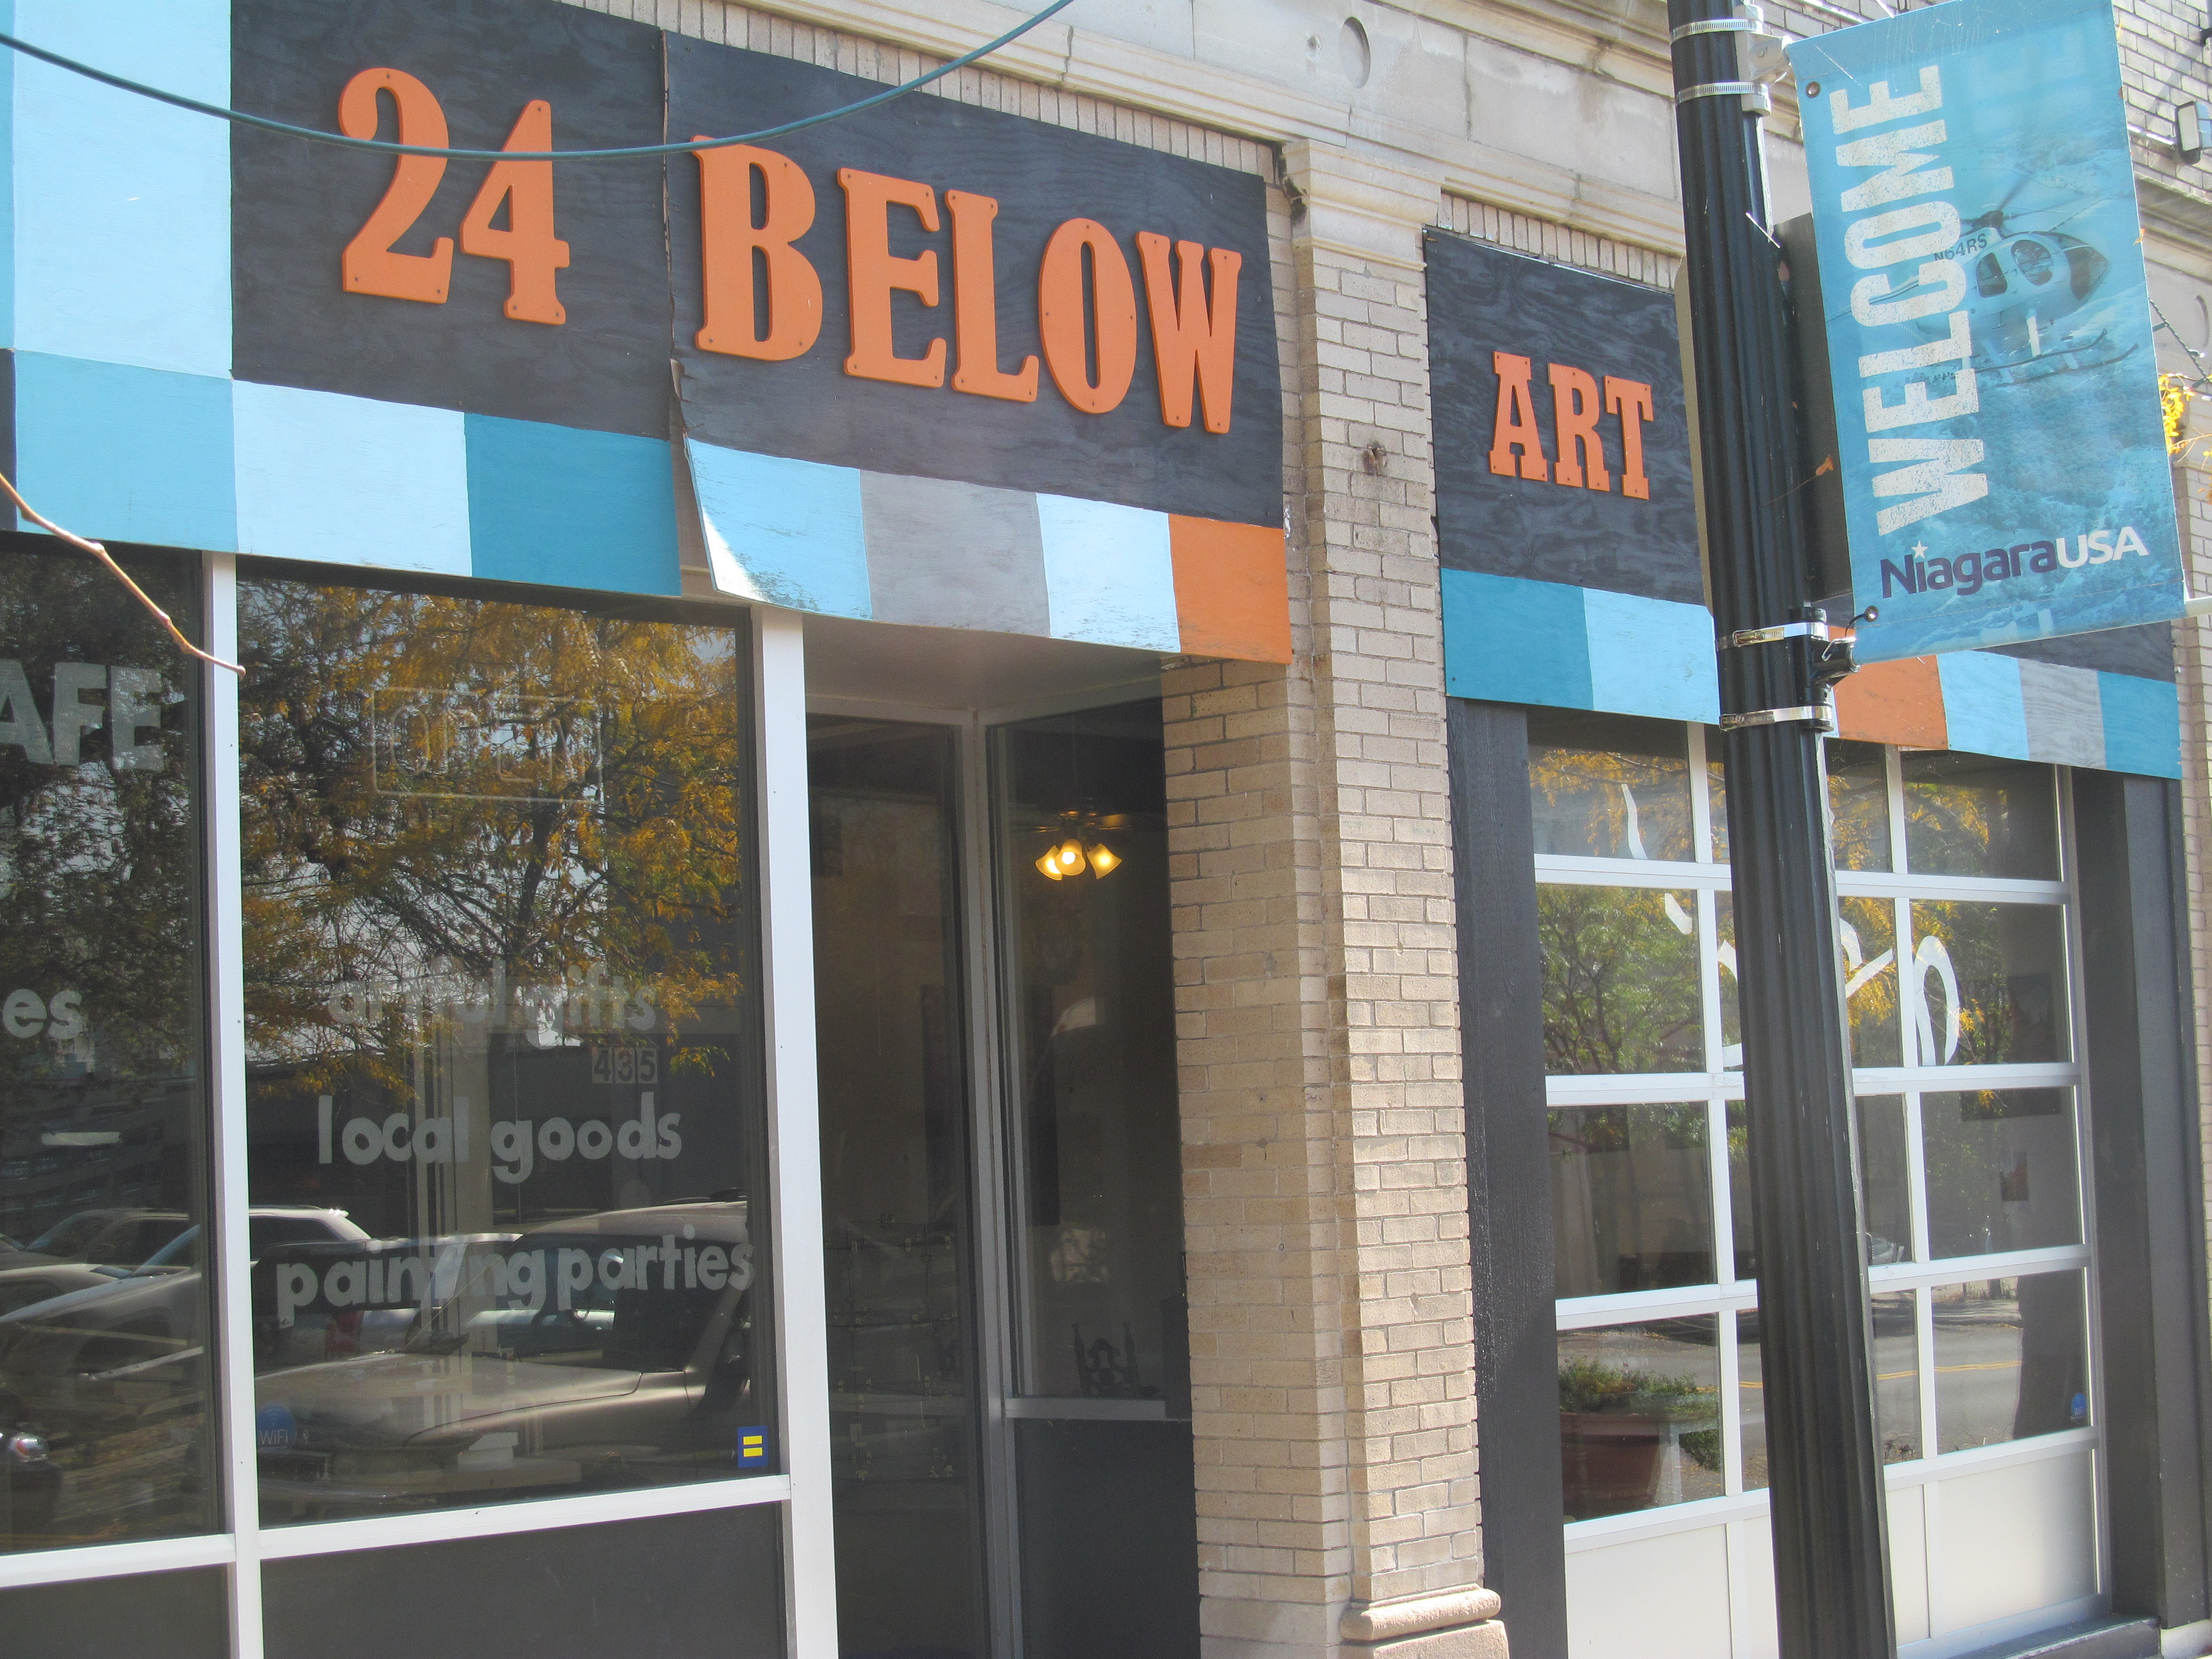 24 Below is the latest Third Street business to be shuttered.